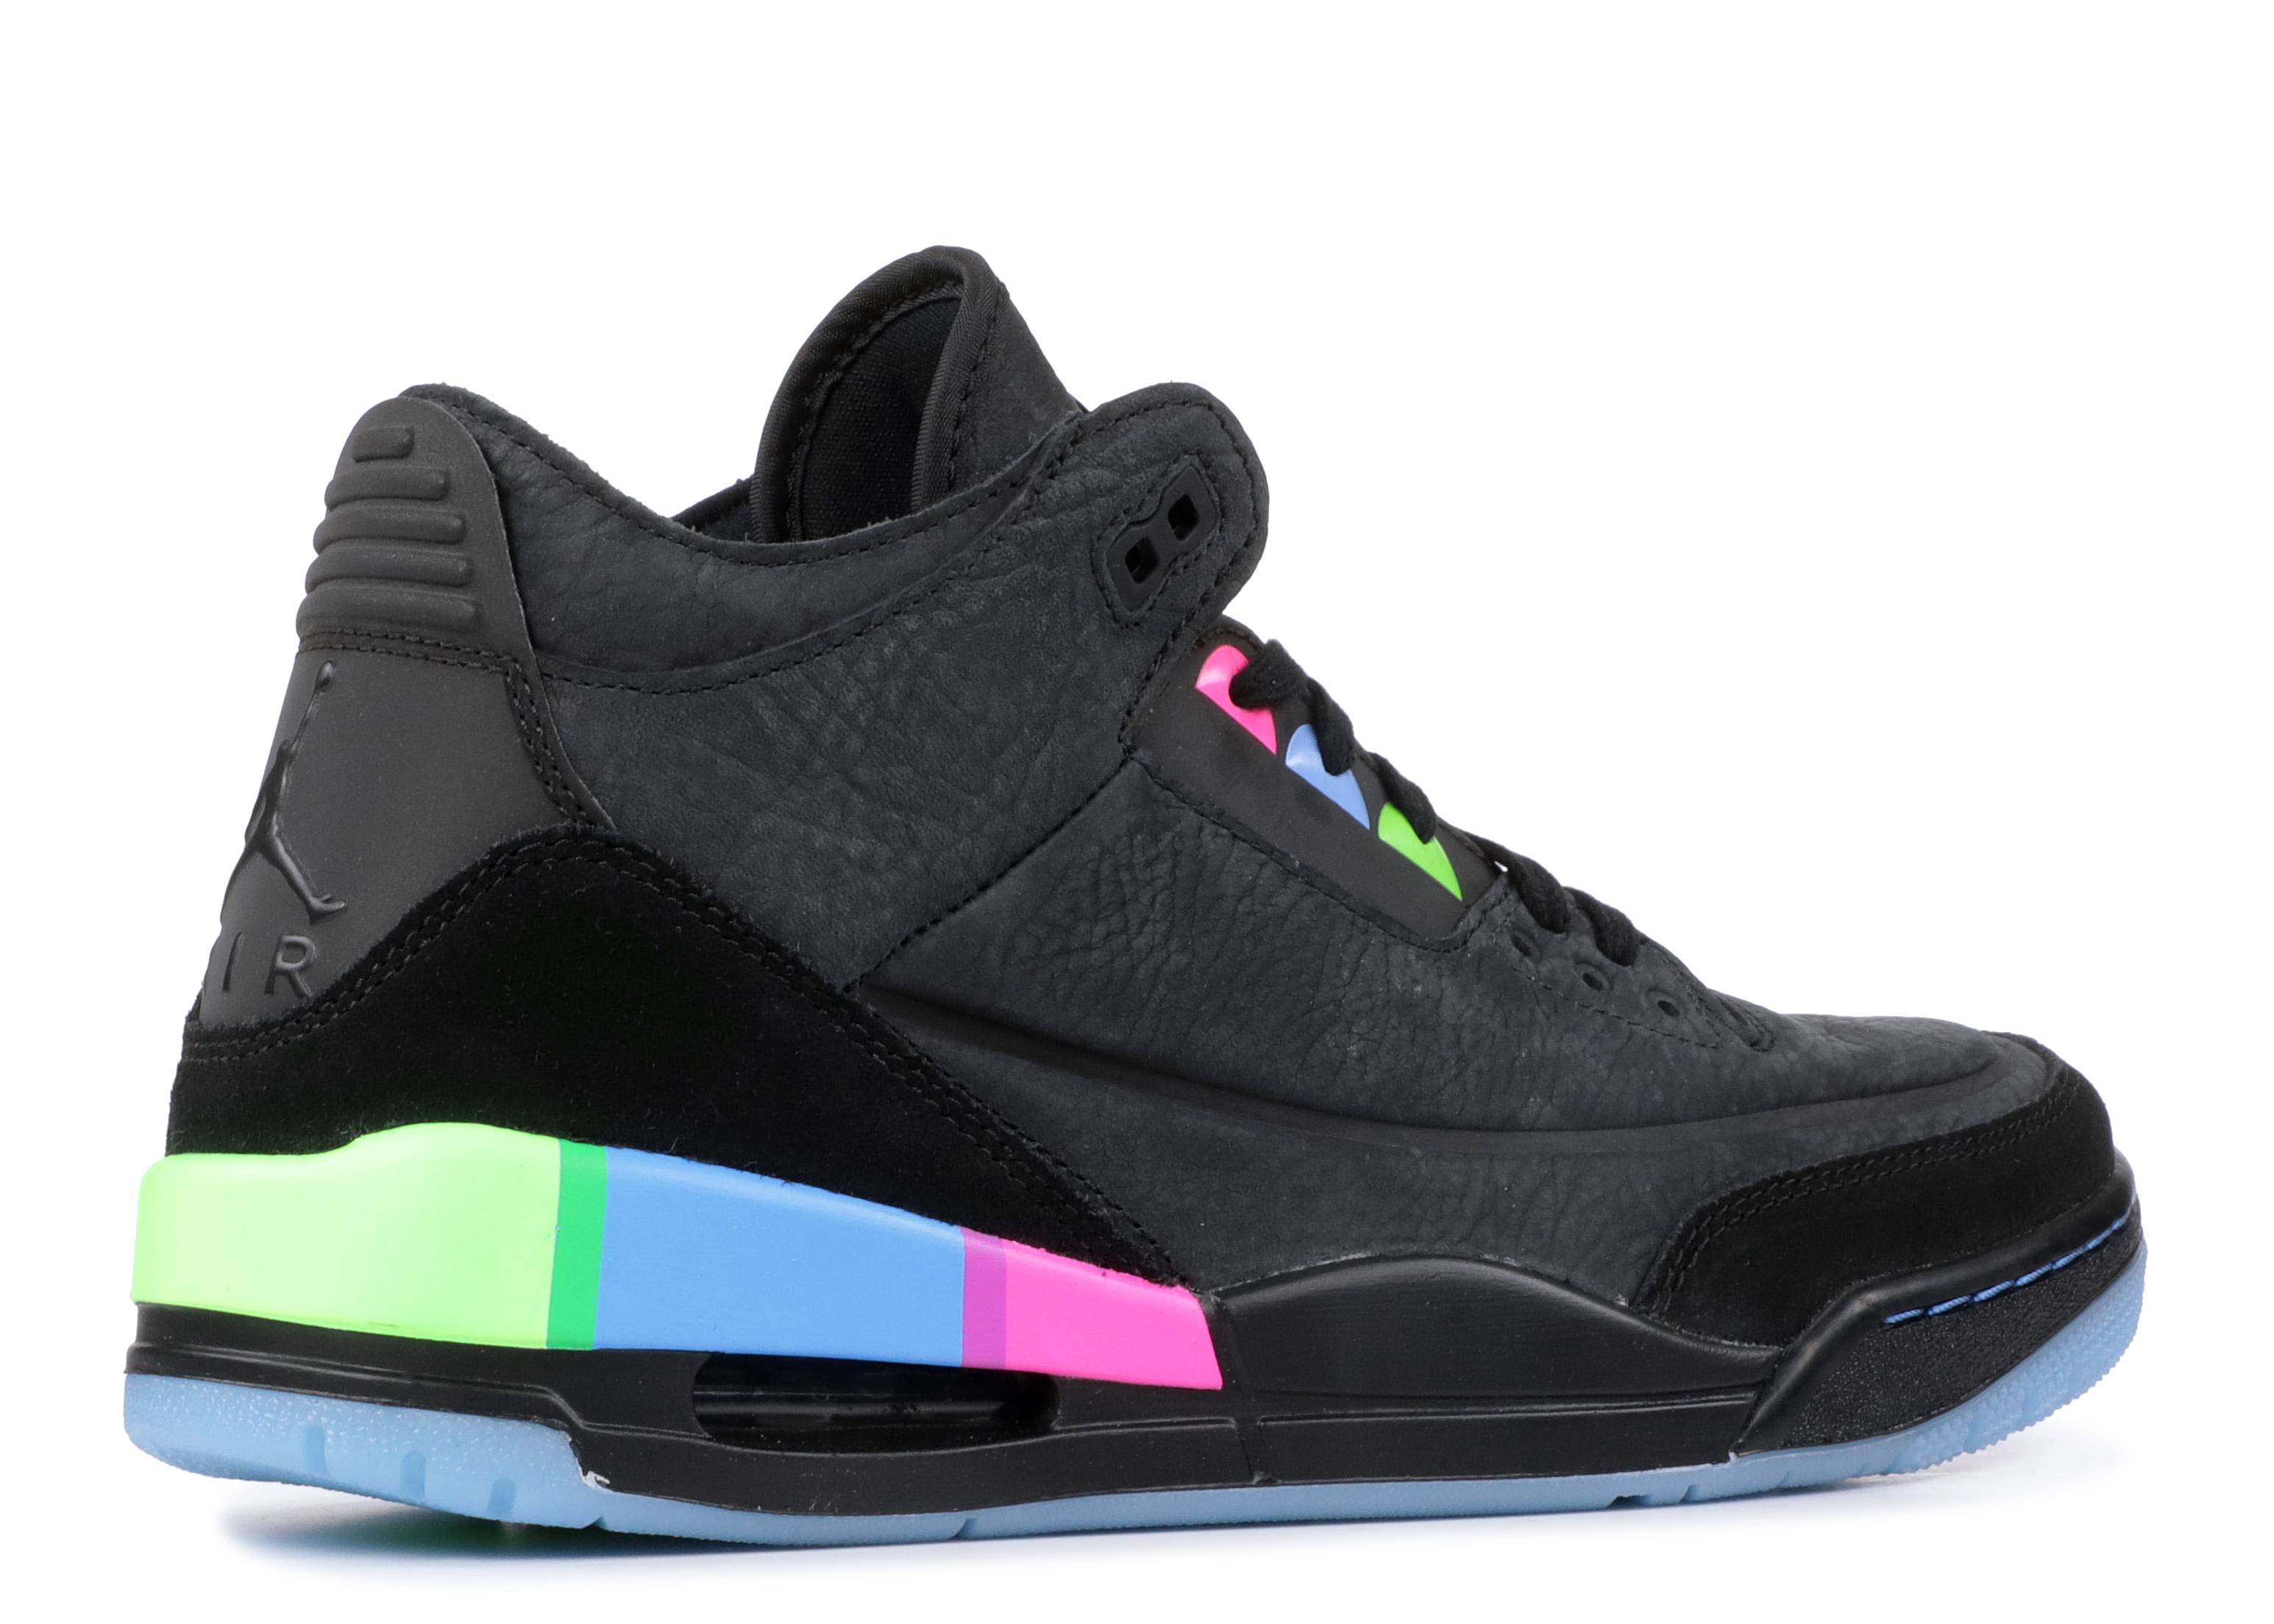 Ausencia Haz todo con mi poder Dinámica  Air Jordan 3 Retro 'Quai 54' - Air Jordan - AT9195 001 - black/electric  green-infrared 23-black | Flight Club